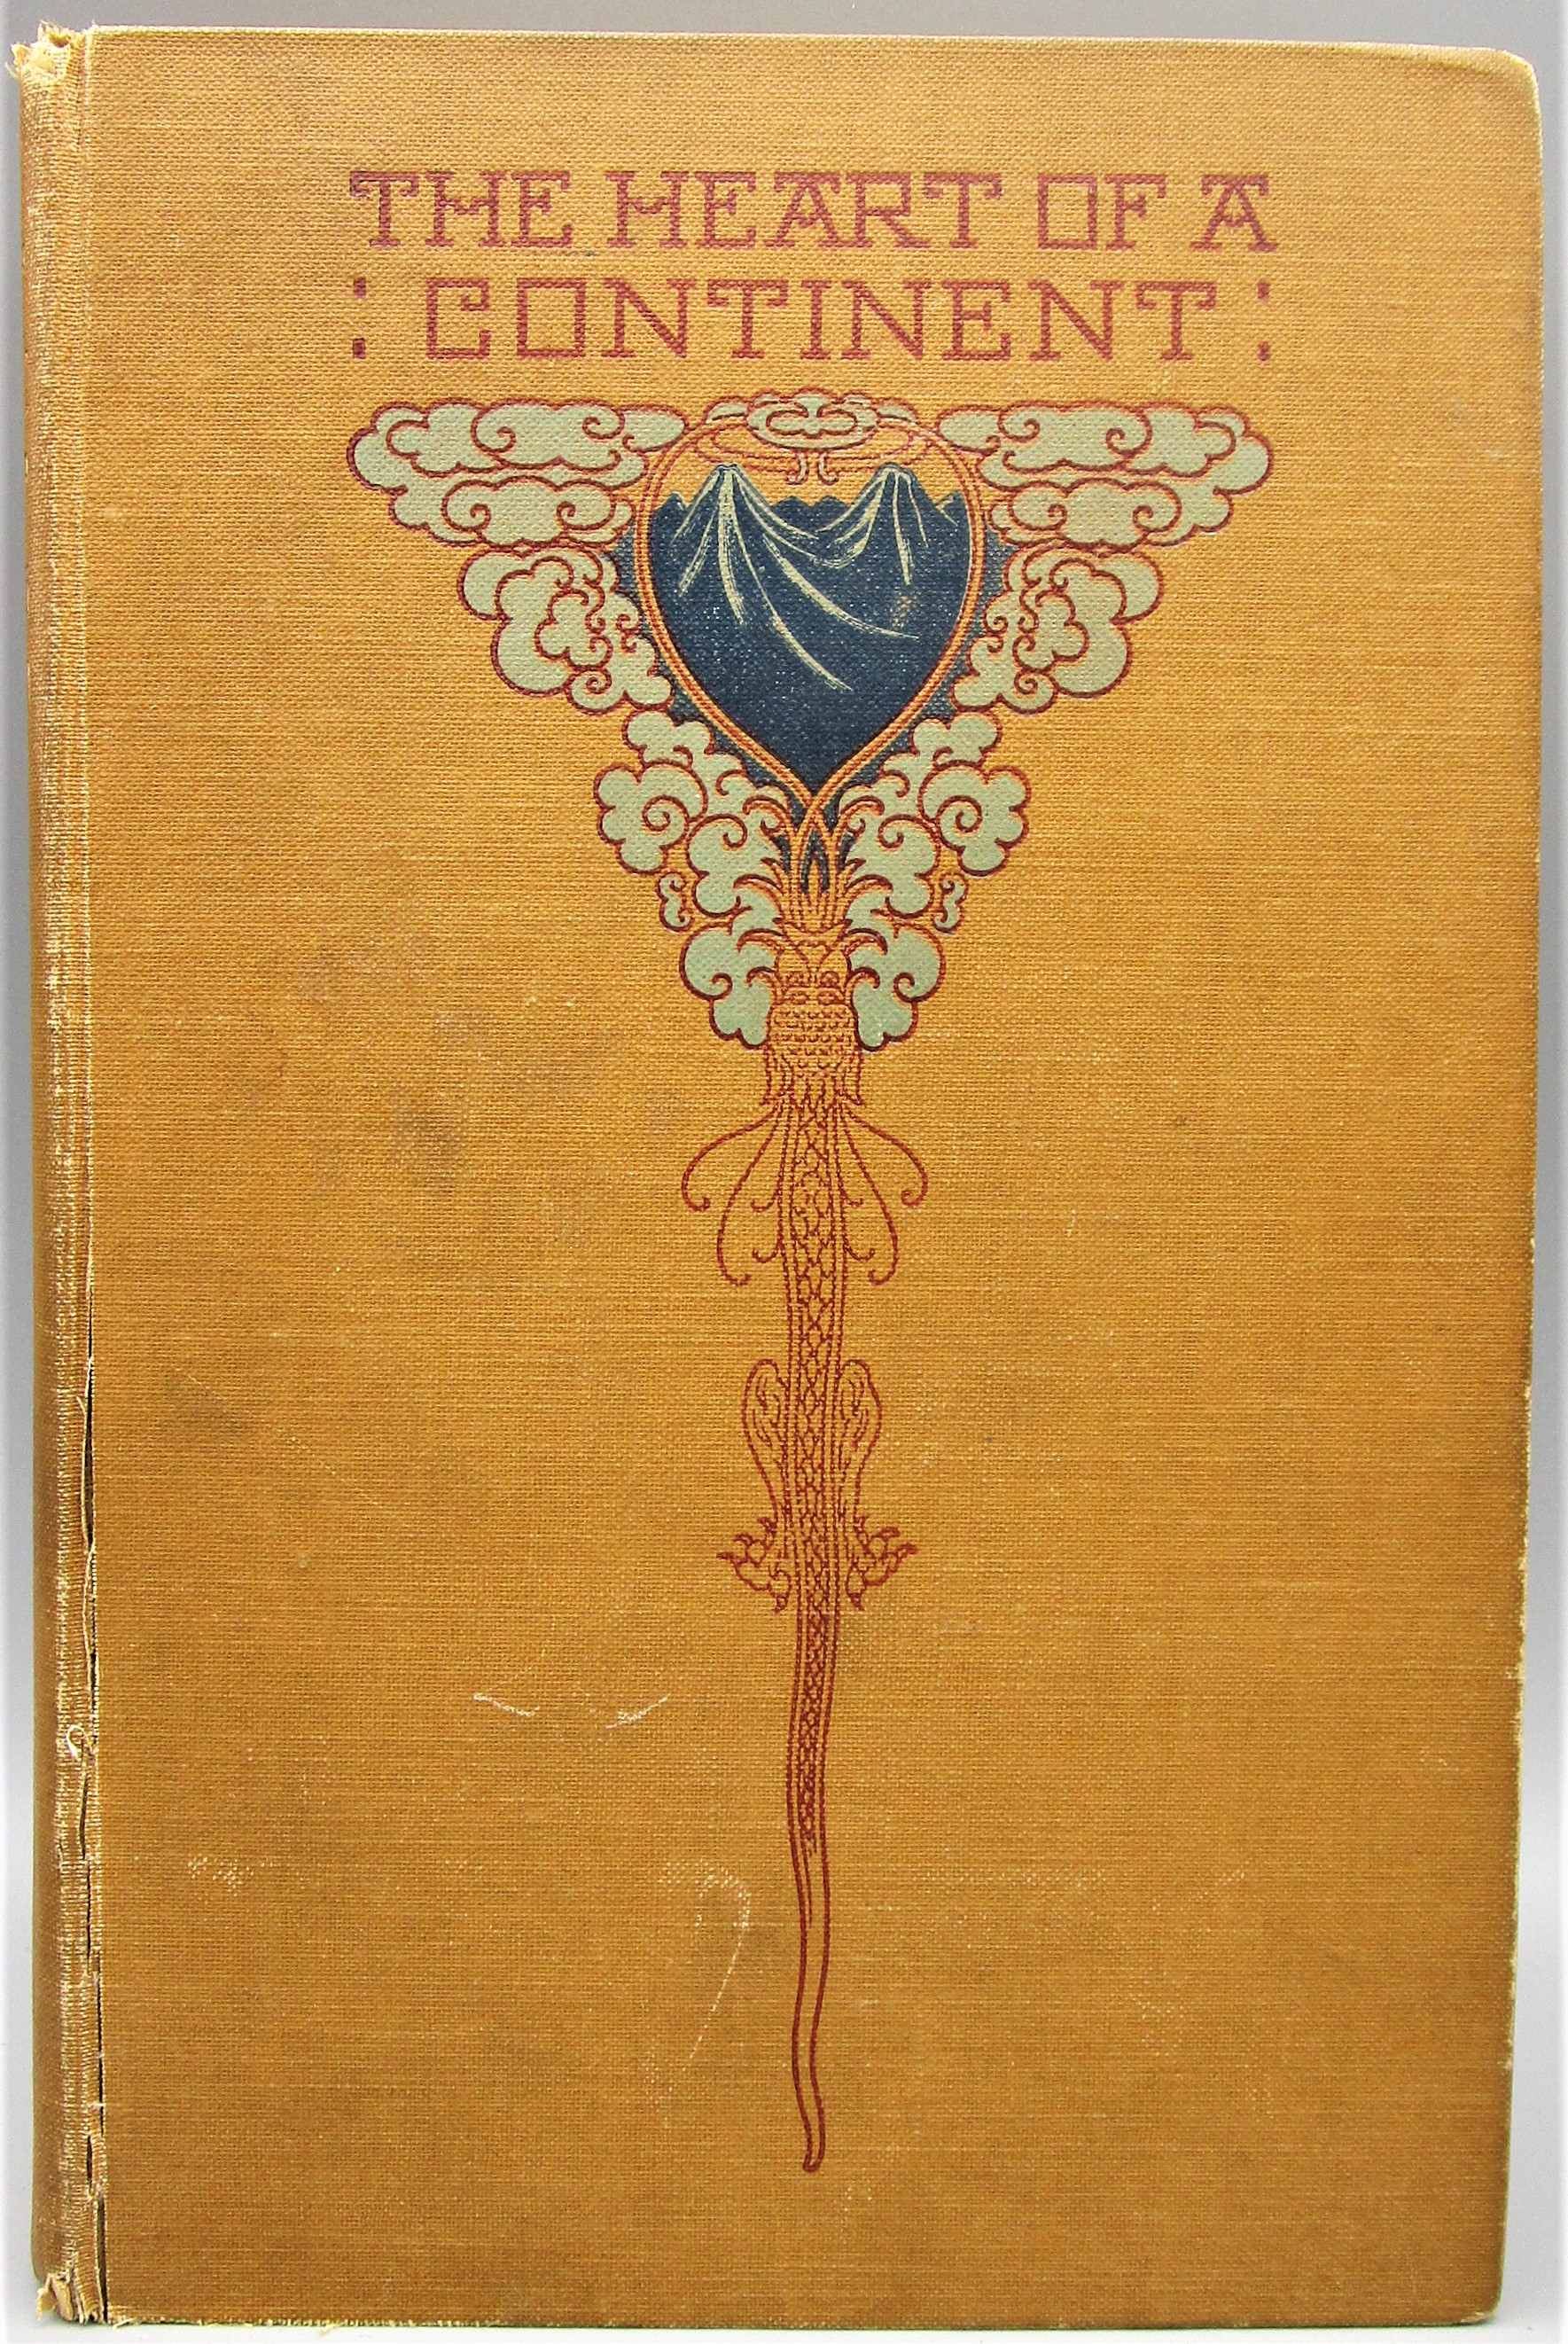 THE HEART OF A CONTINENT, by Francis Edward Younghusband - 1904